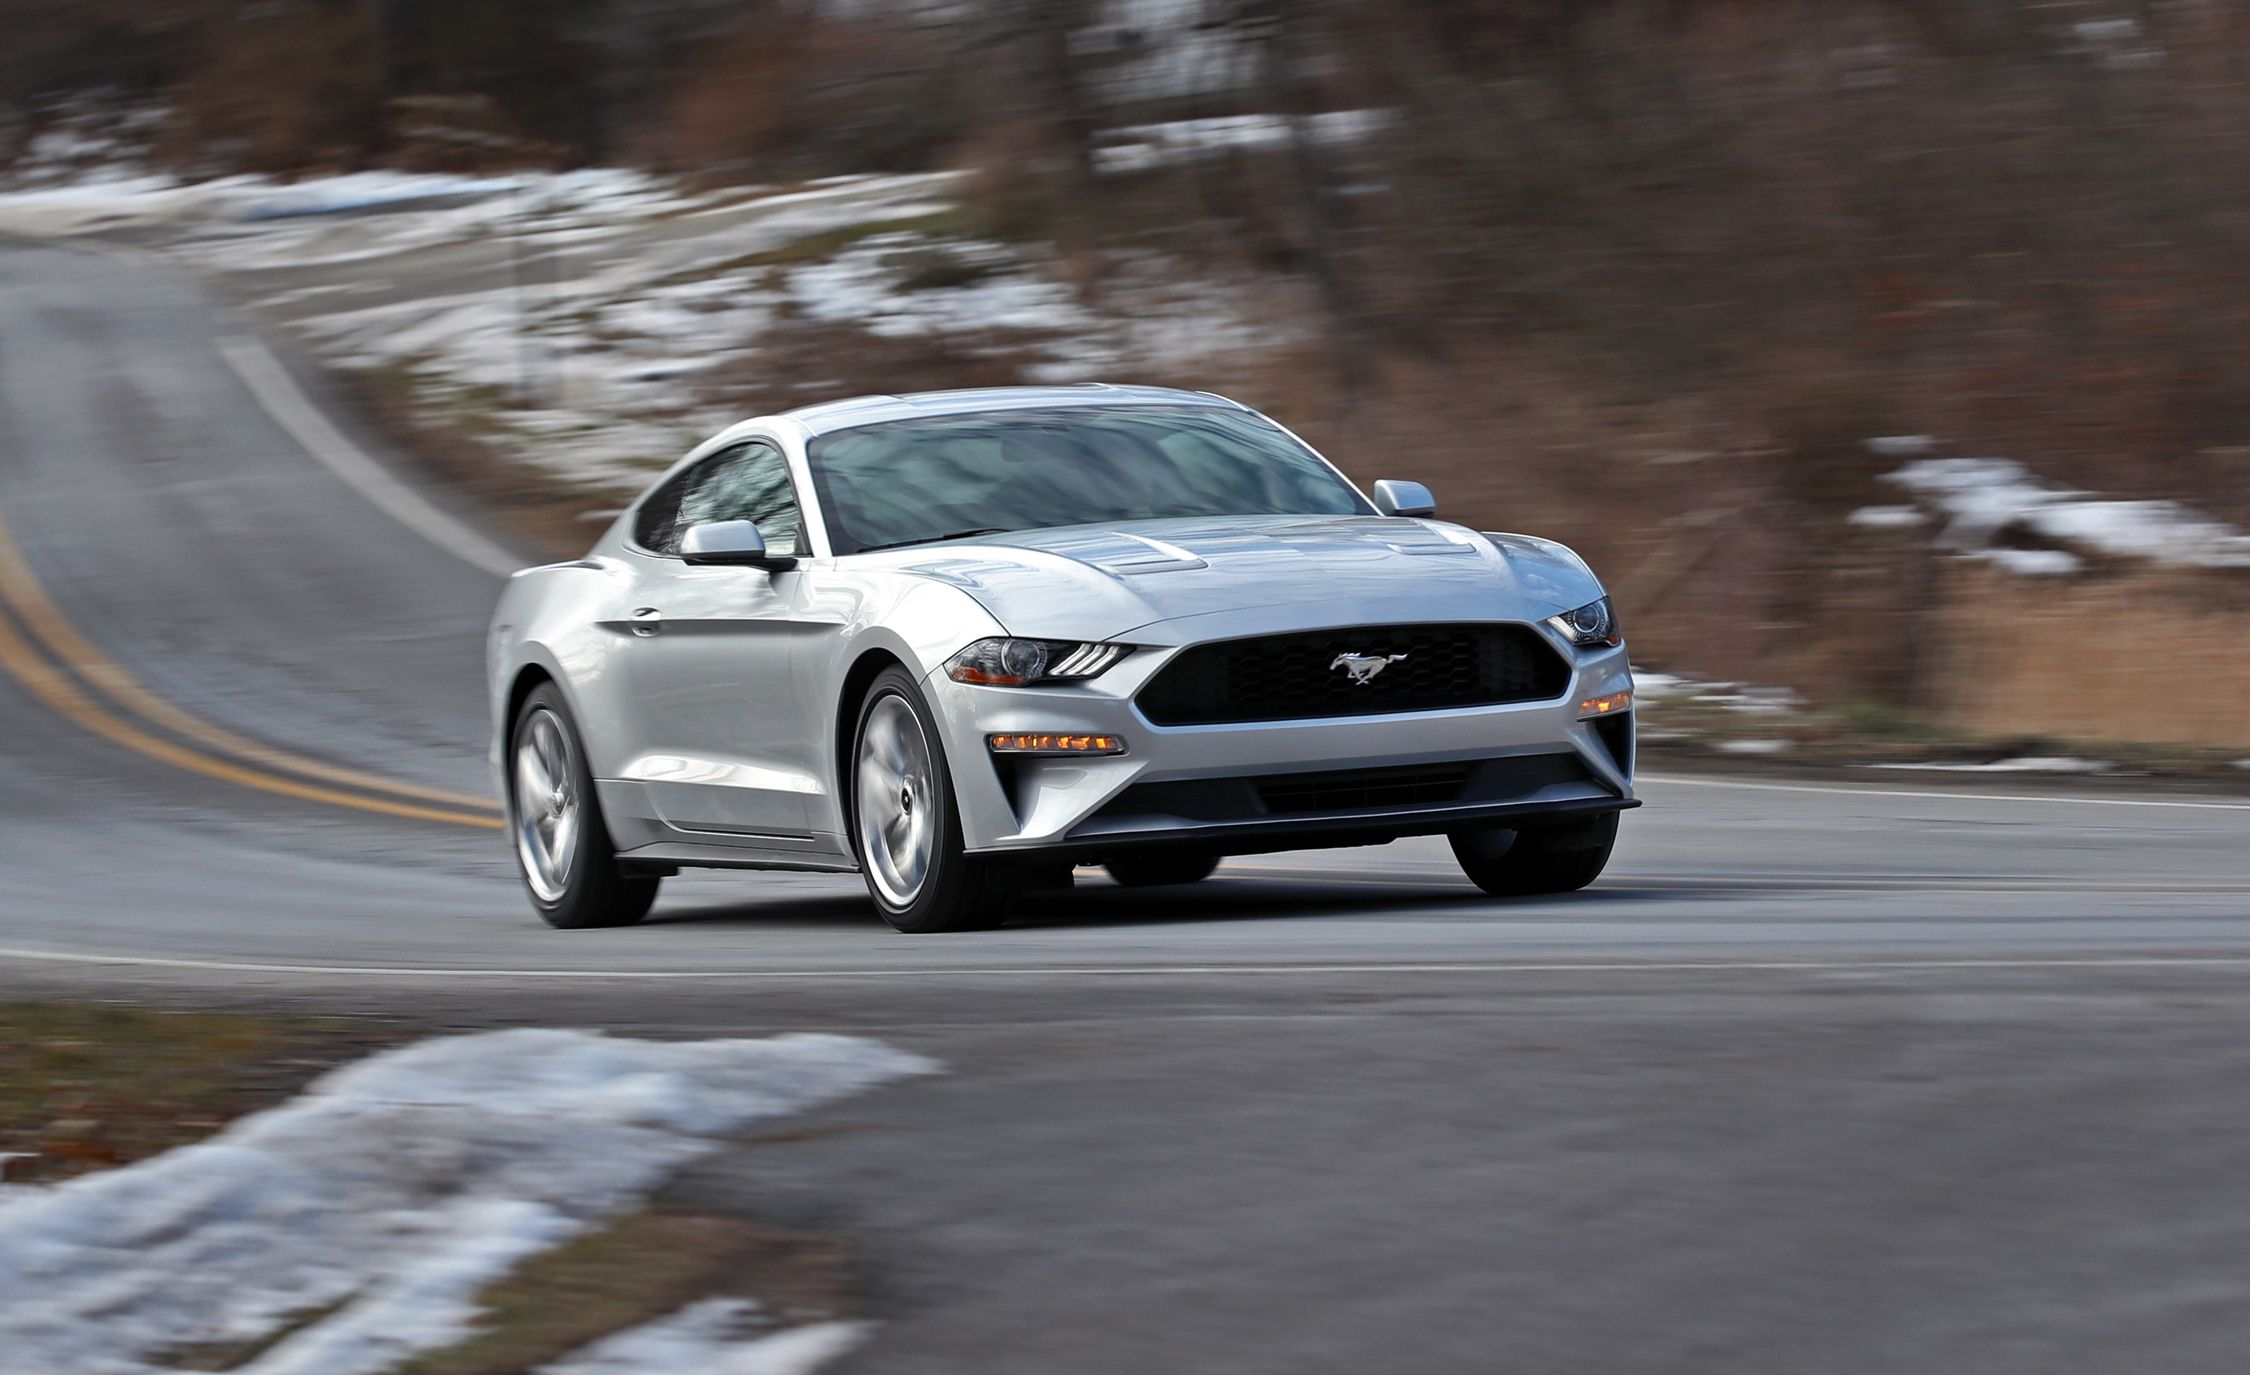 2018 ford mustang 2 3l ecoboost manual test does more torque help the turbo model review car and driver